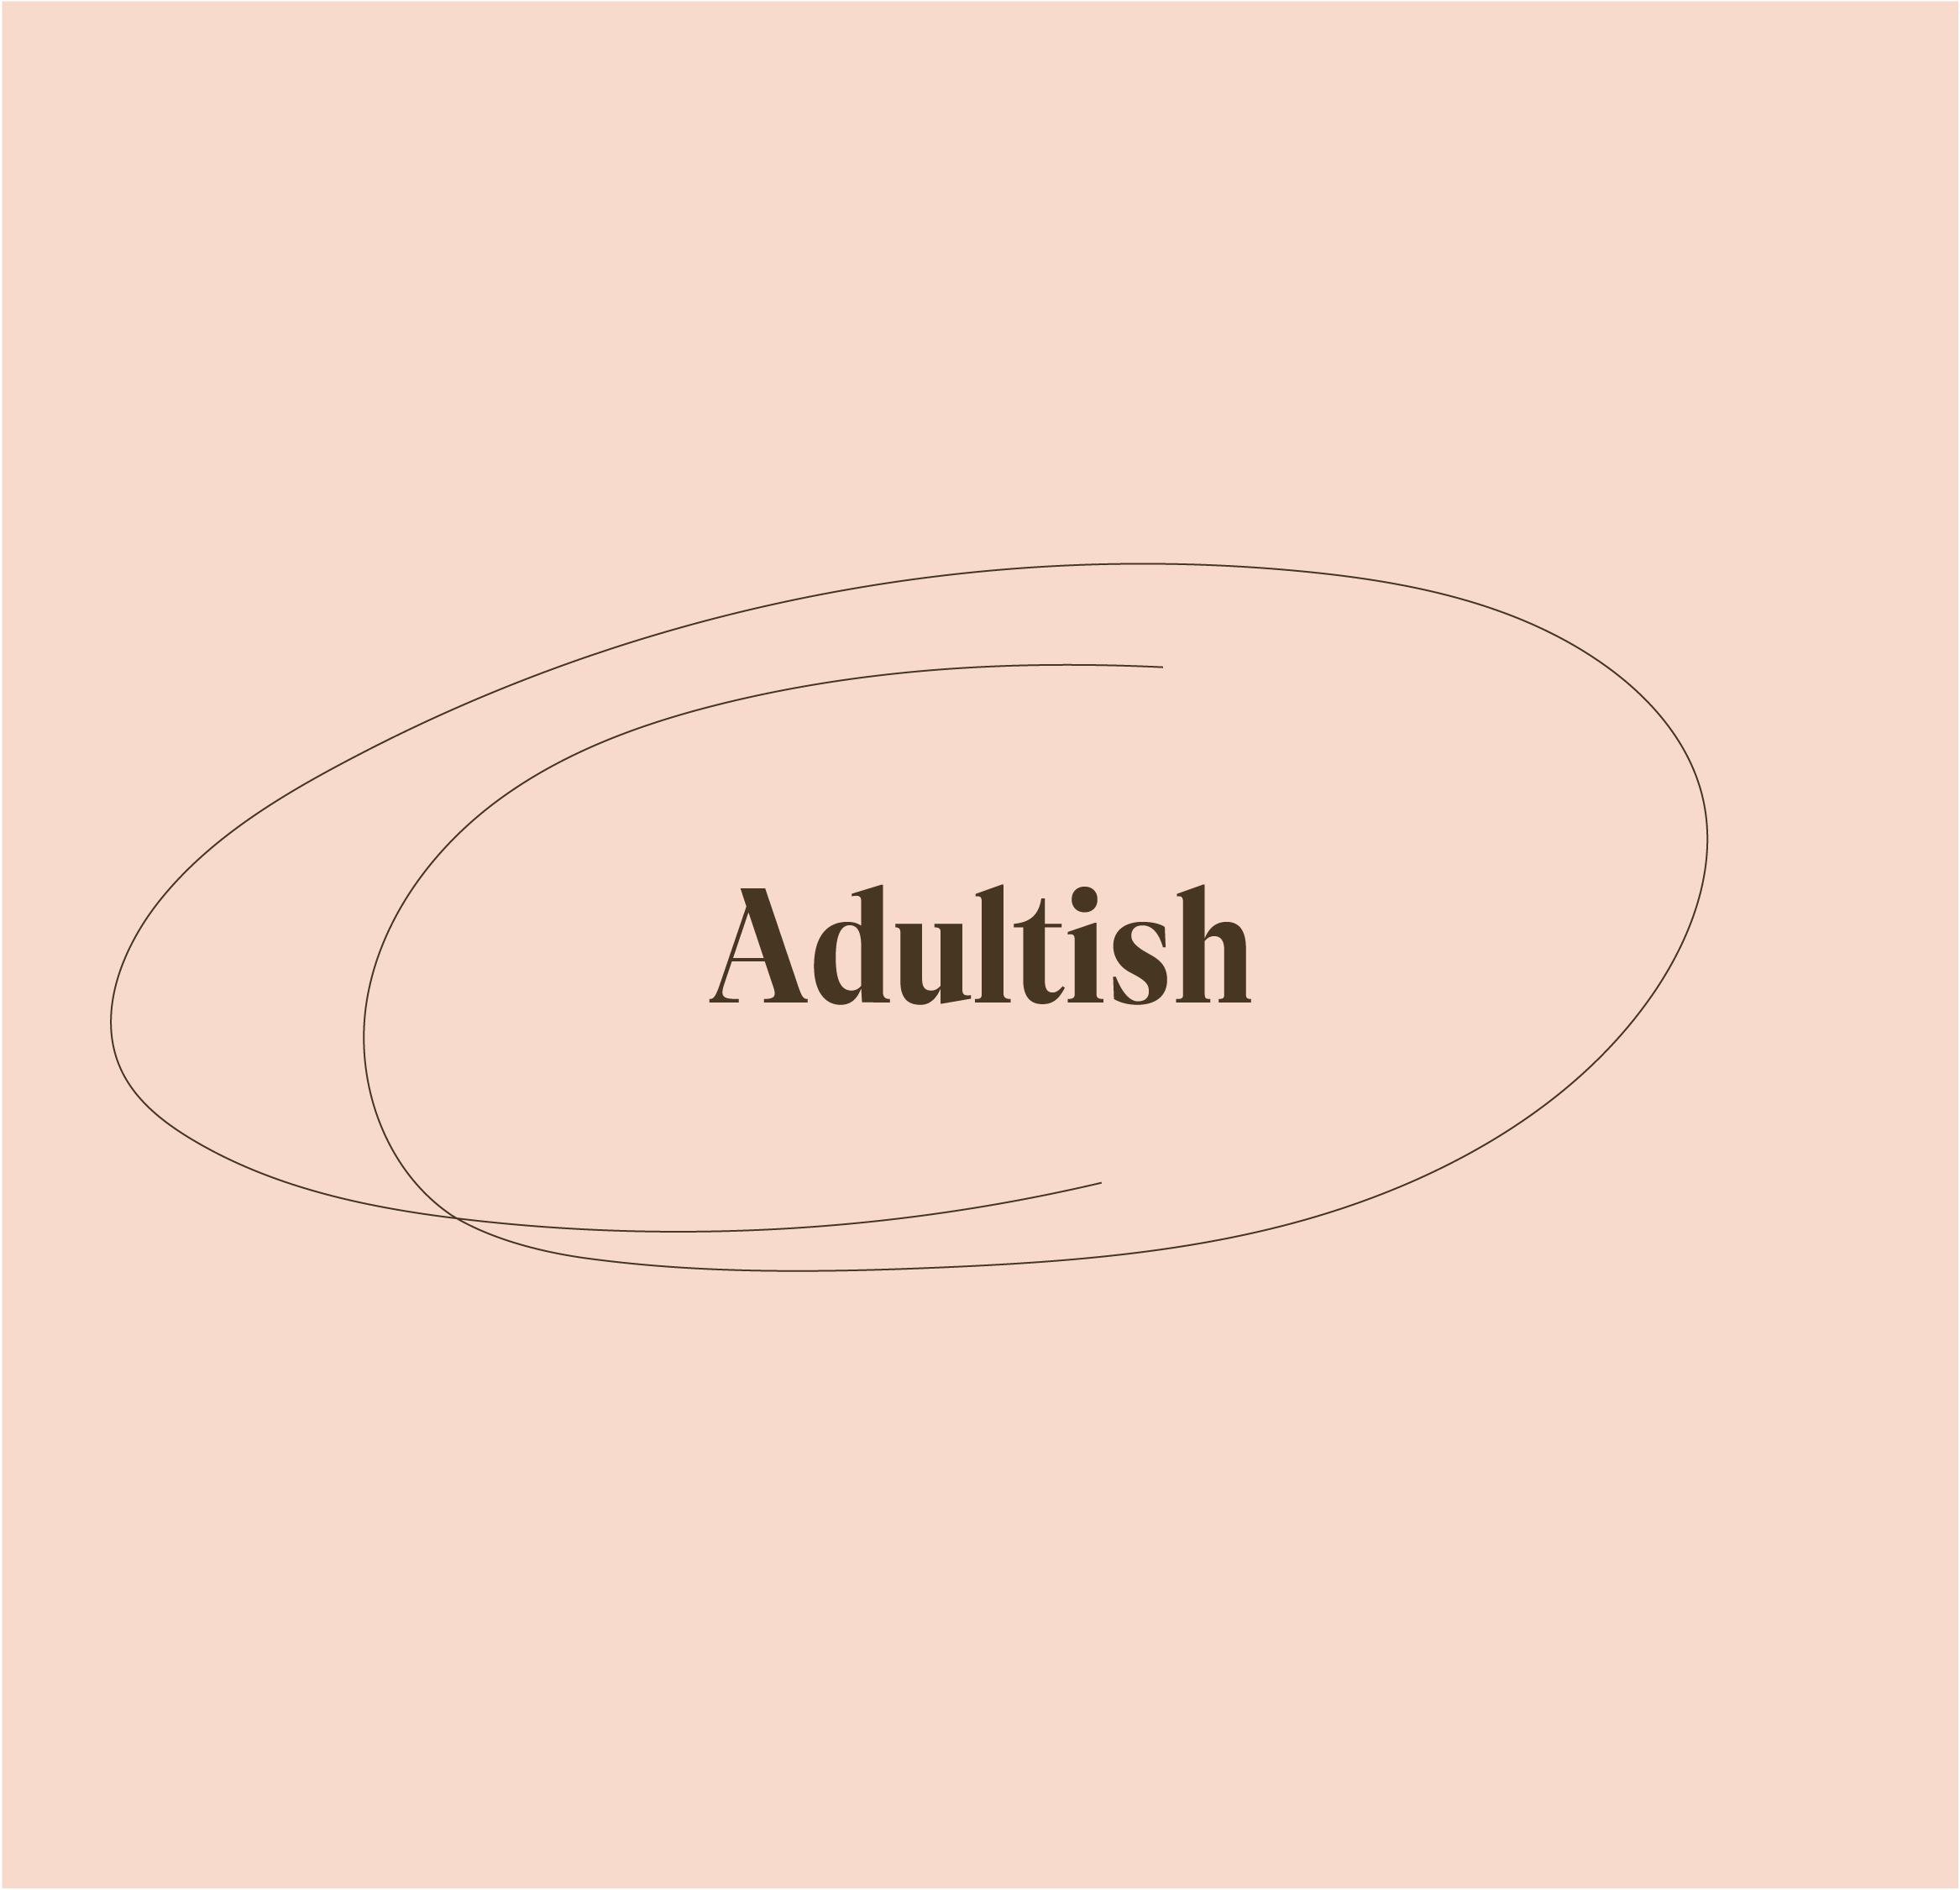 Adultish_A1